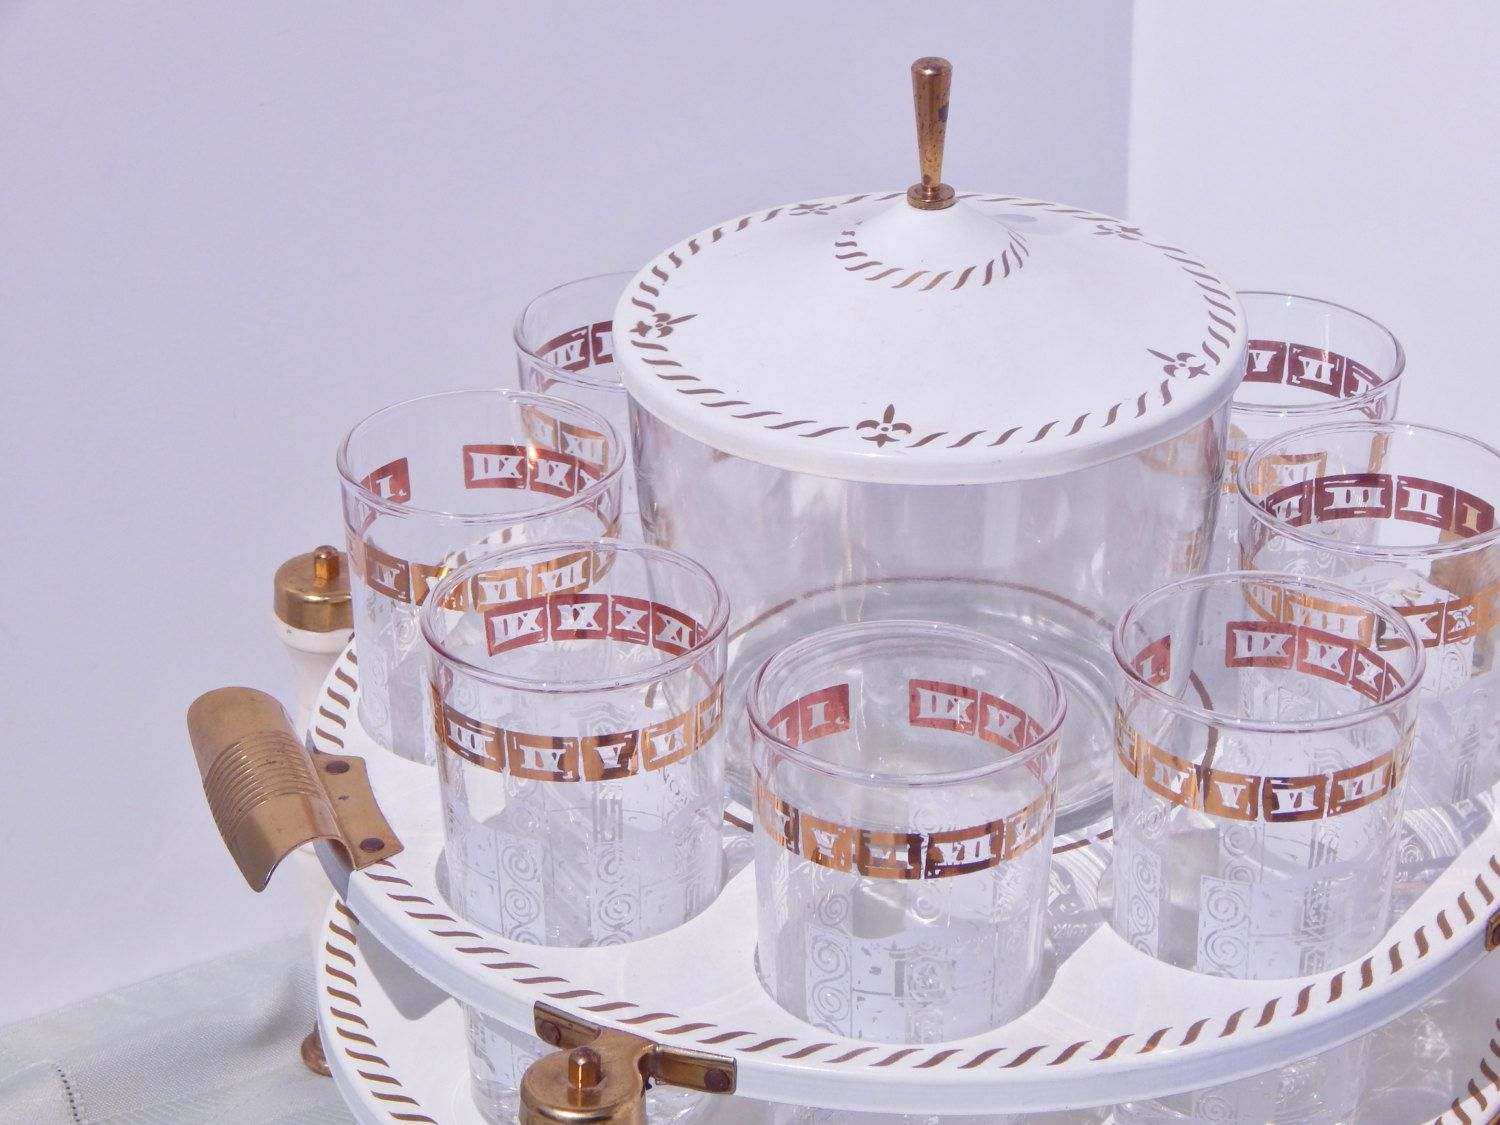 Stunning Mid Century Bar Cocktail Serving Tray Glasses Ice Bucket White Gold French Clocks Time for a Drink Hazel Atlas Culver Libbey Atomic by OffbeatAvenue on Etsy